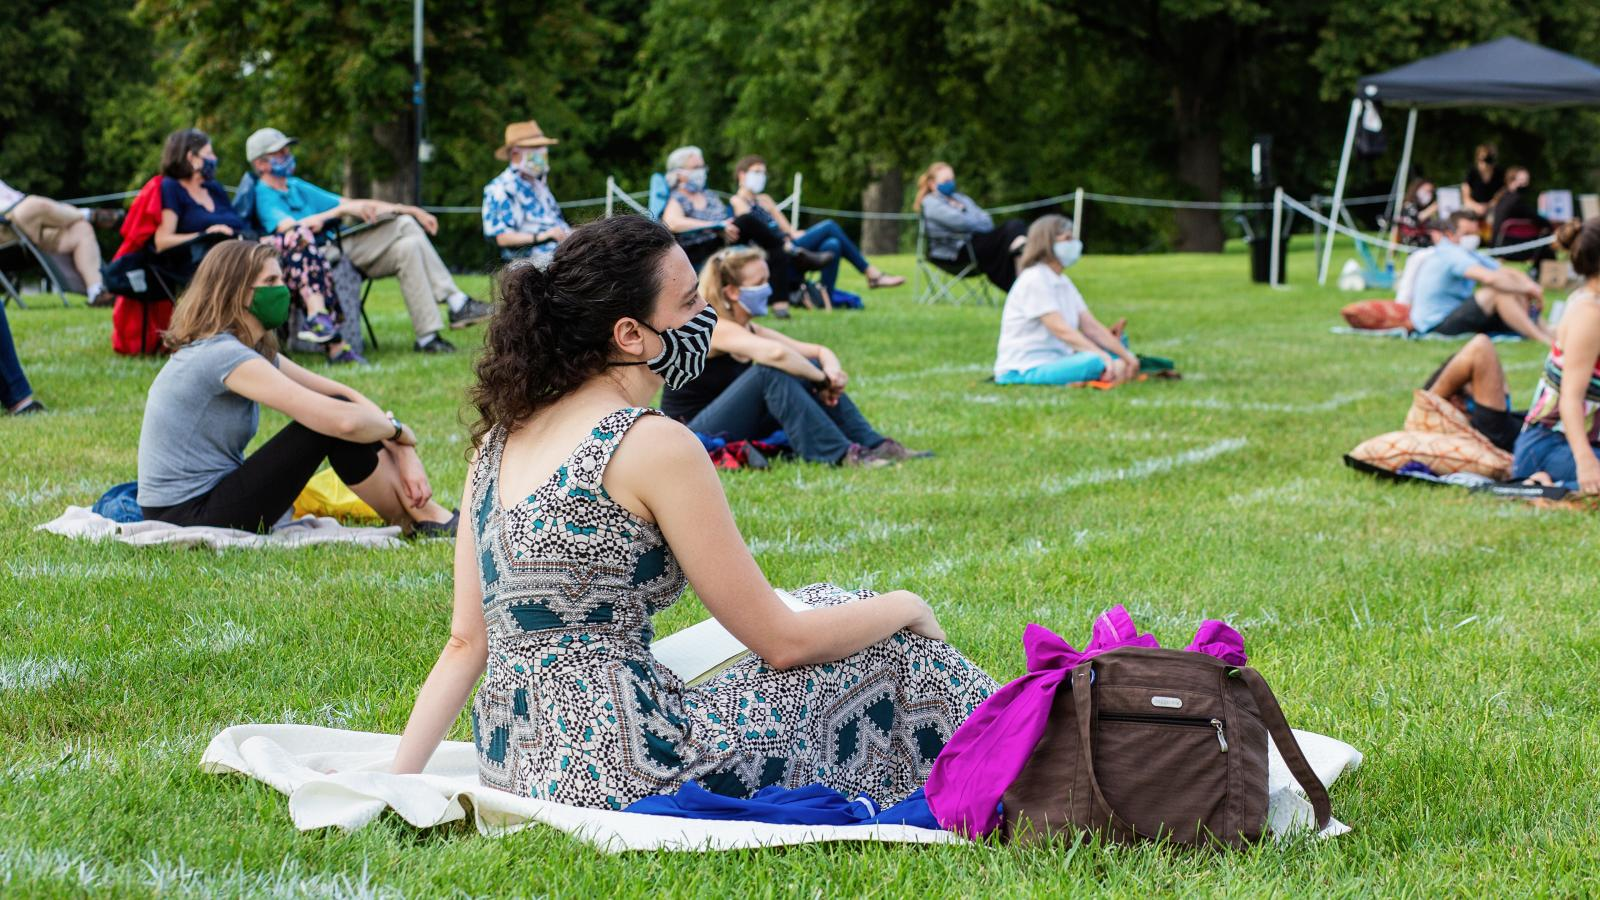 People wearing masks sit on picnic blankets on the grass while spread out from one another